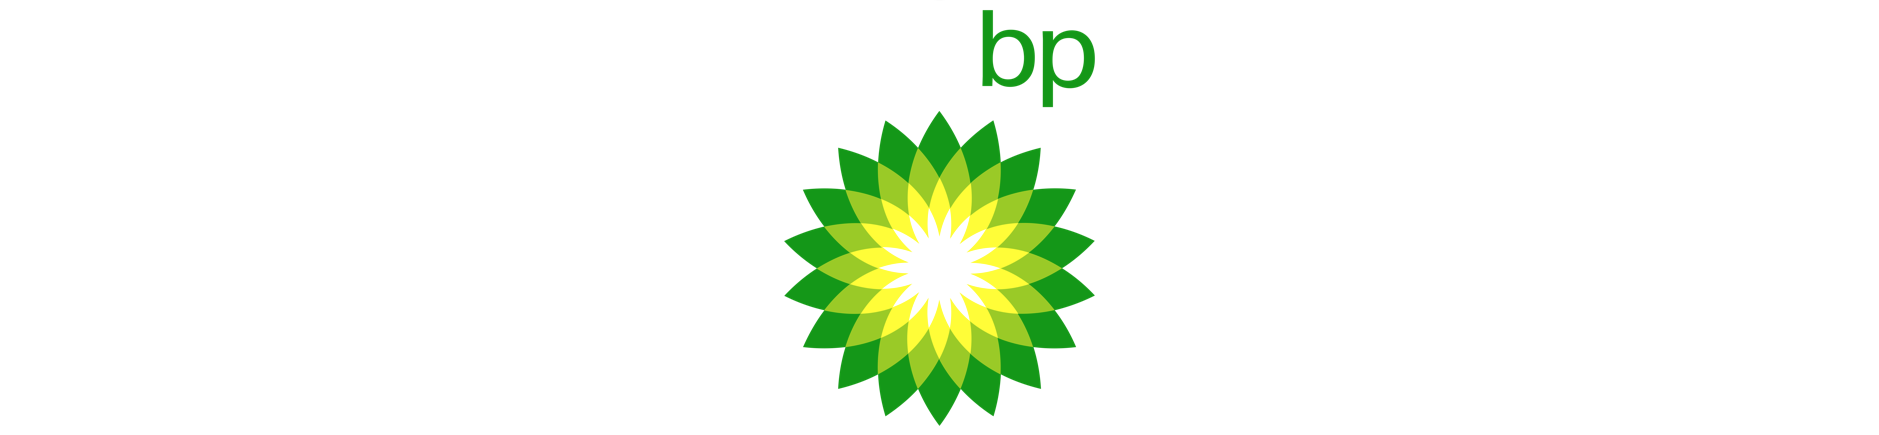 bp logo for website banner.png